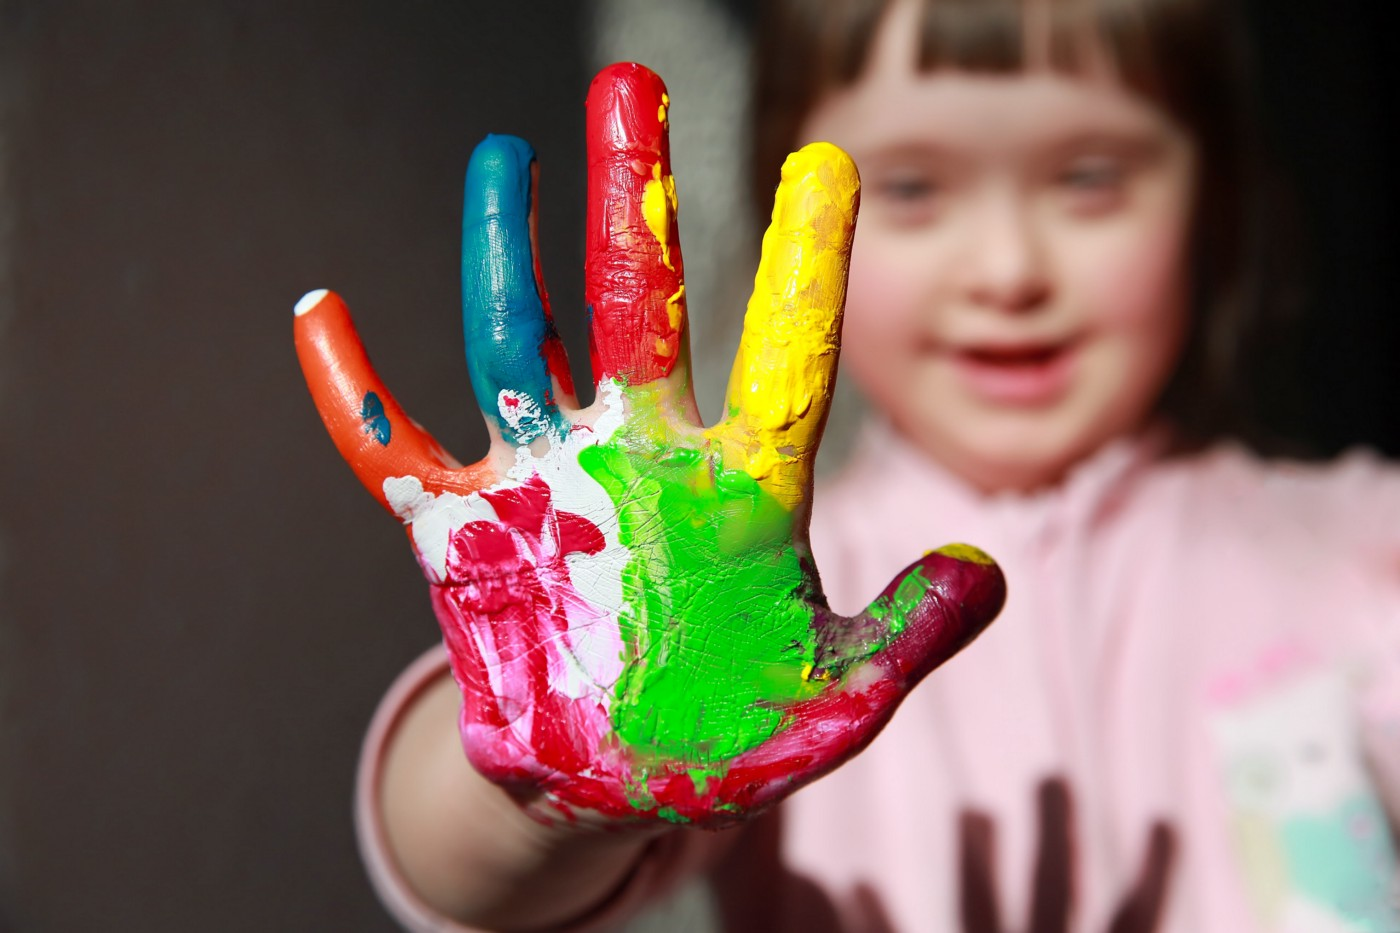 A young child with Down syndrome holding up their painted palm to show five painted fingers